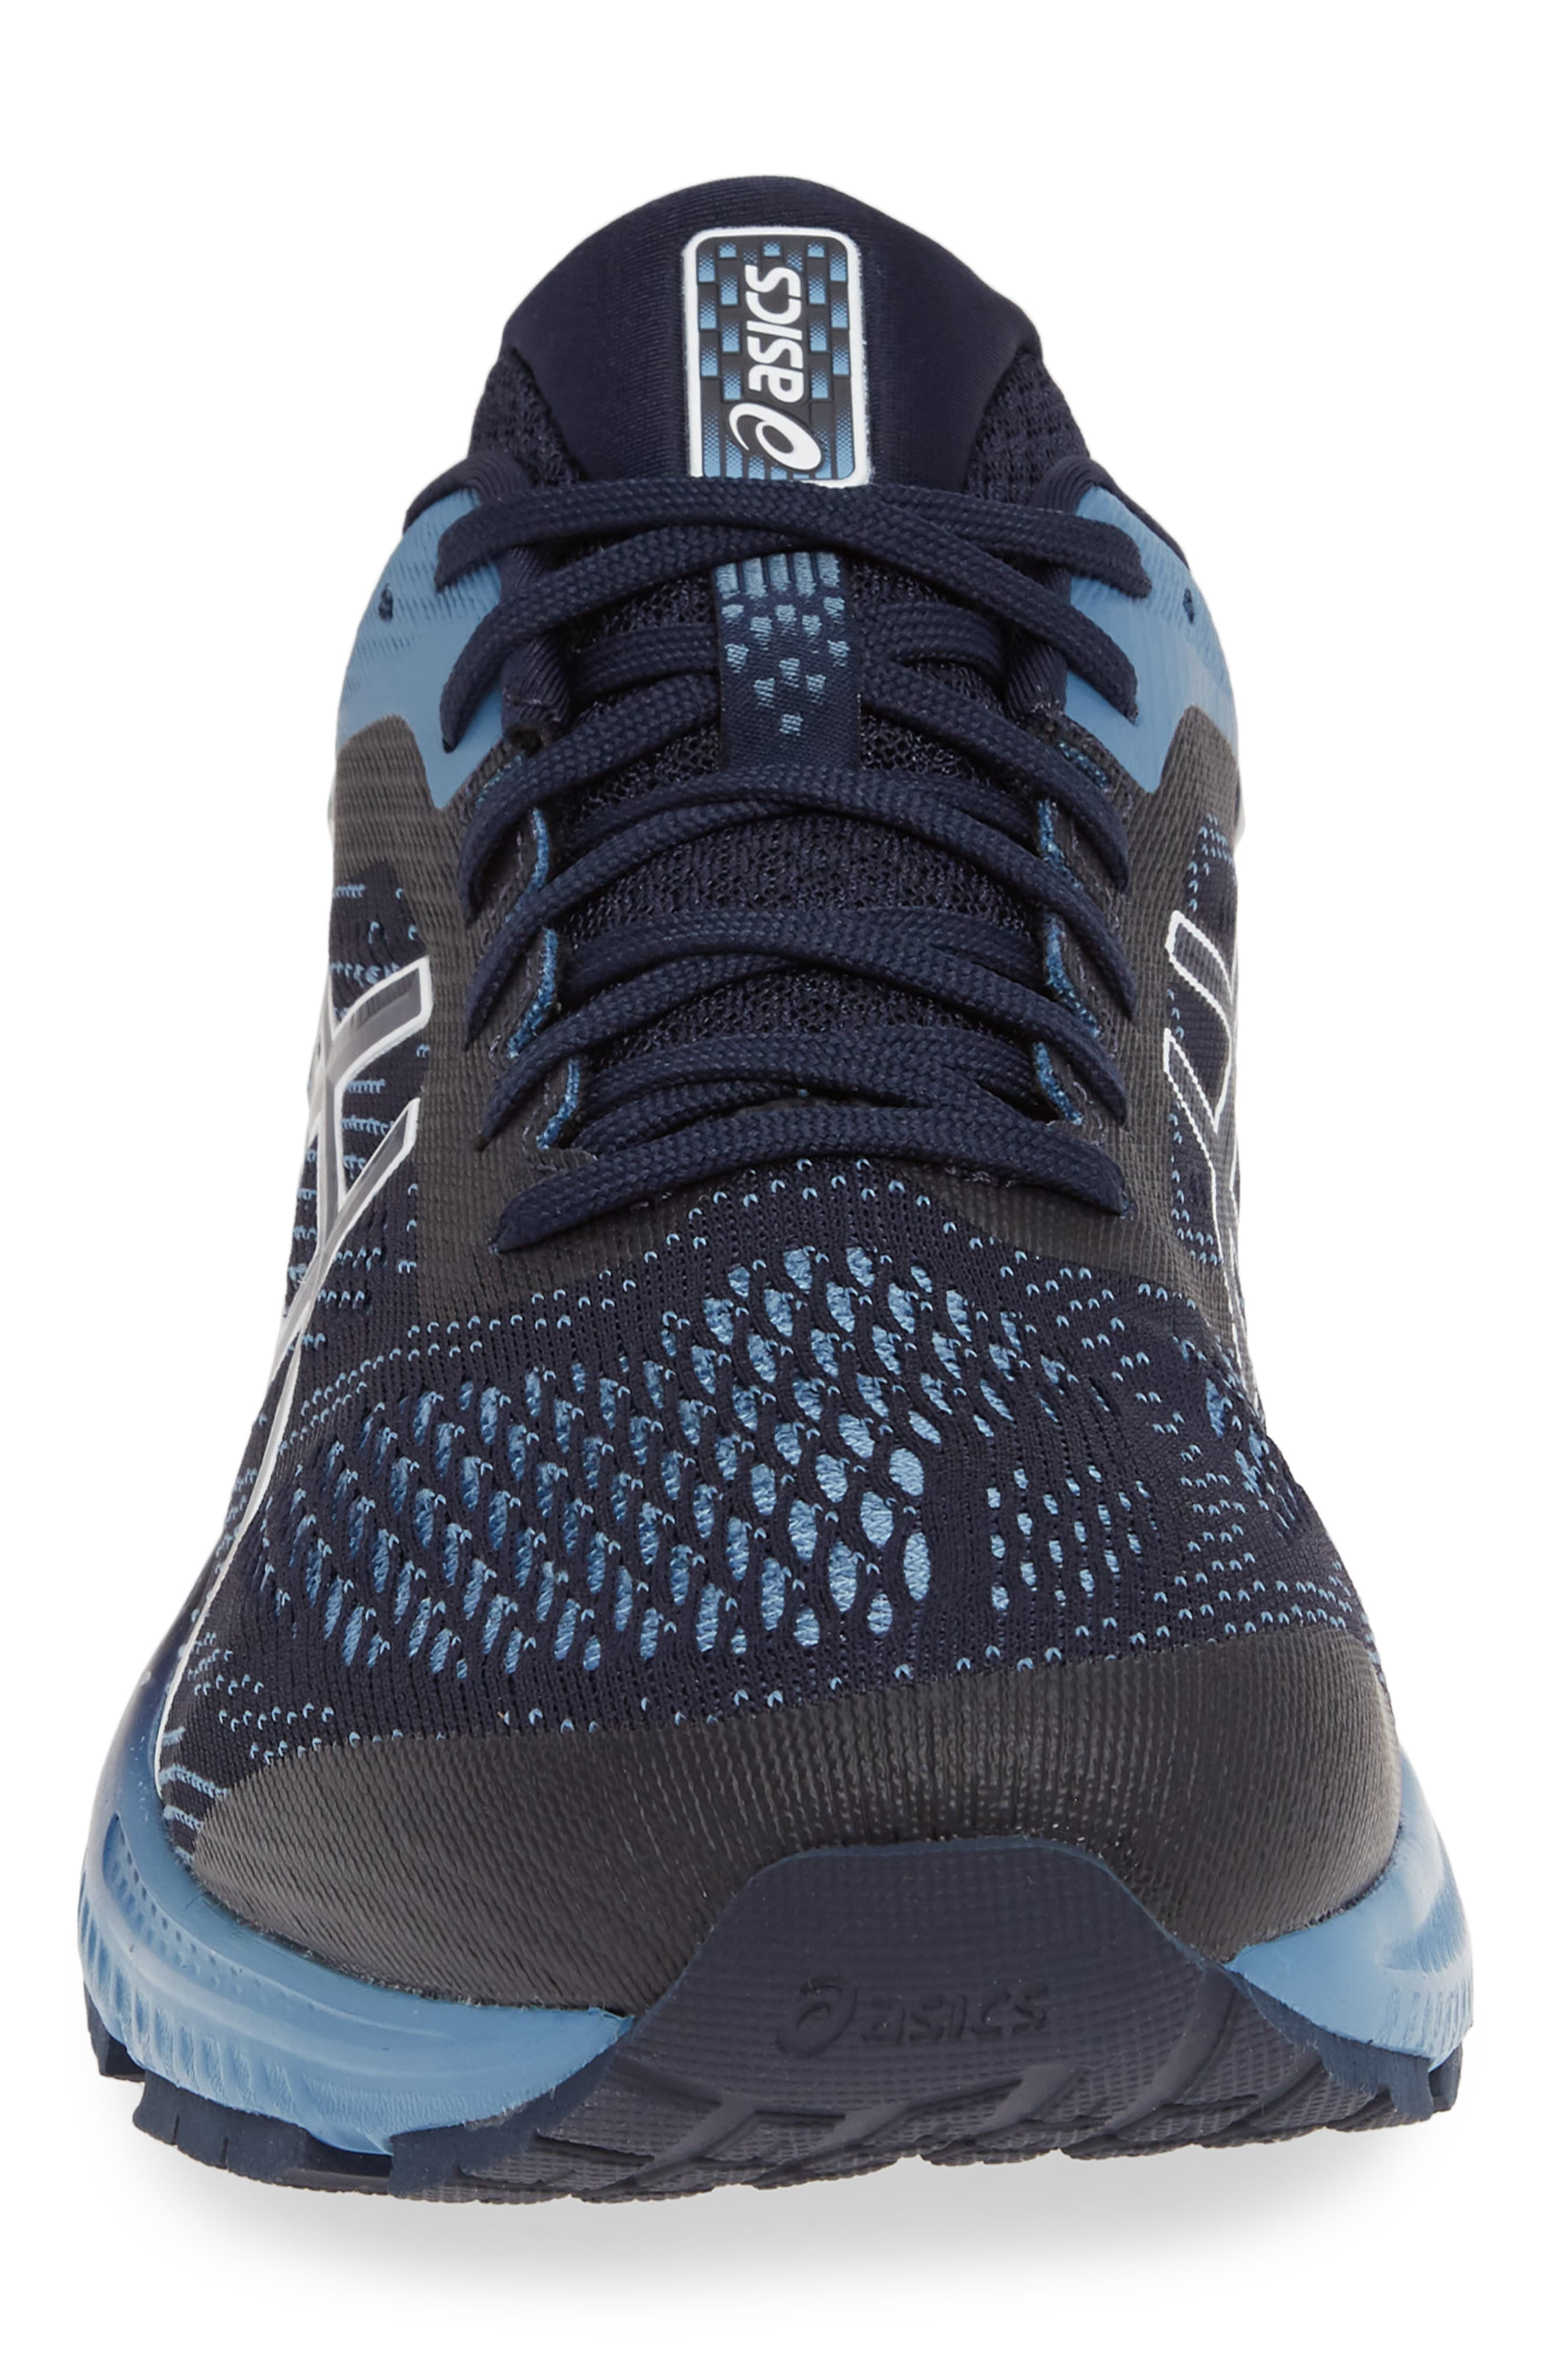 Nordstrom - Asics Gel Kayano 26 $79.96 + Shipping (Select color and Size)